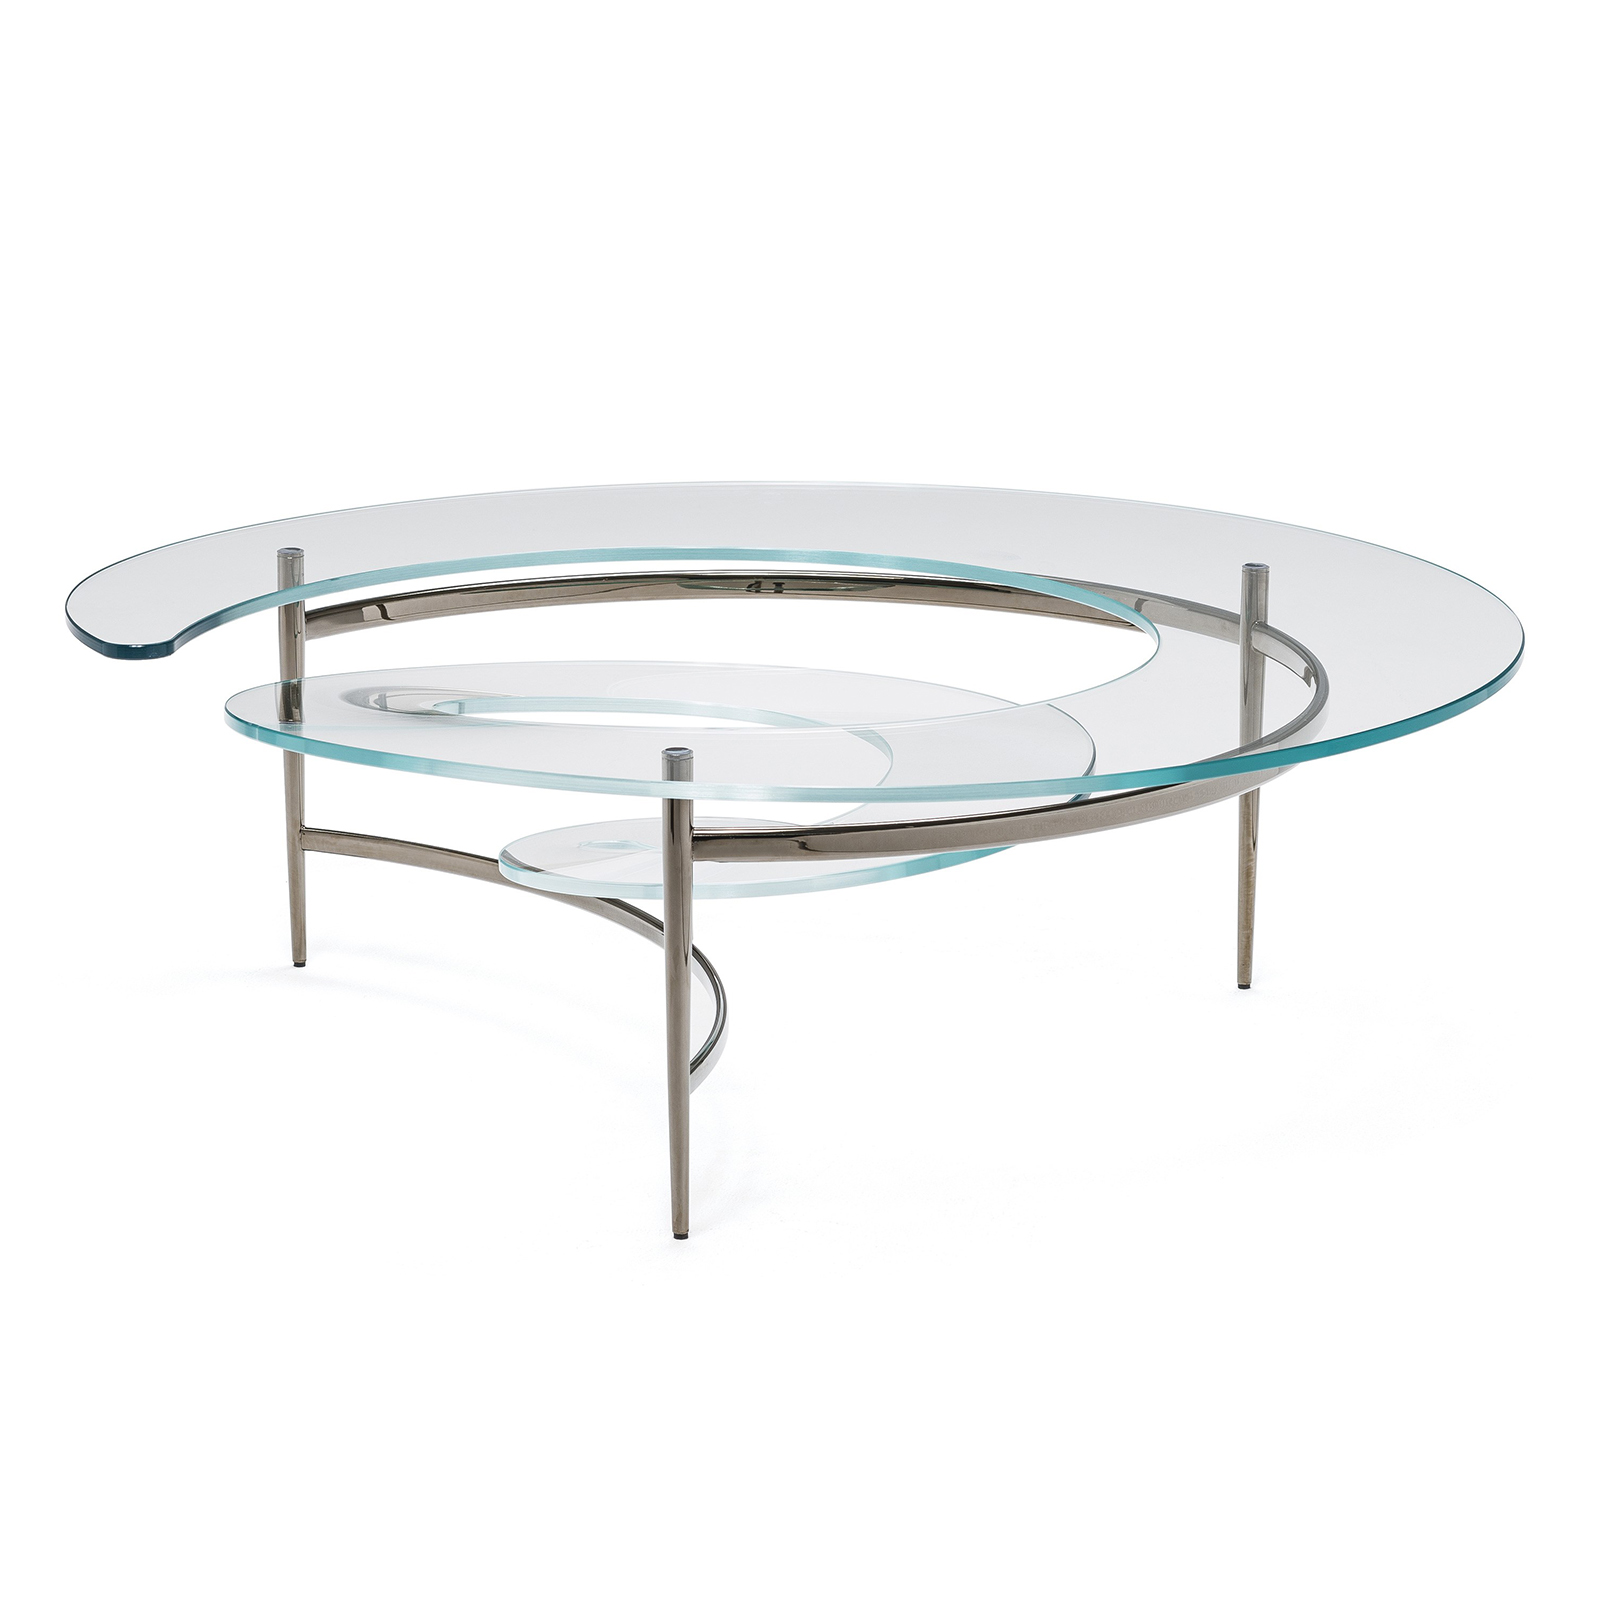 Table basse design en verre spirale mobilier de luxe - Table basse verre but ...